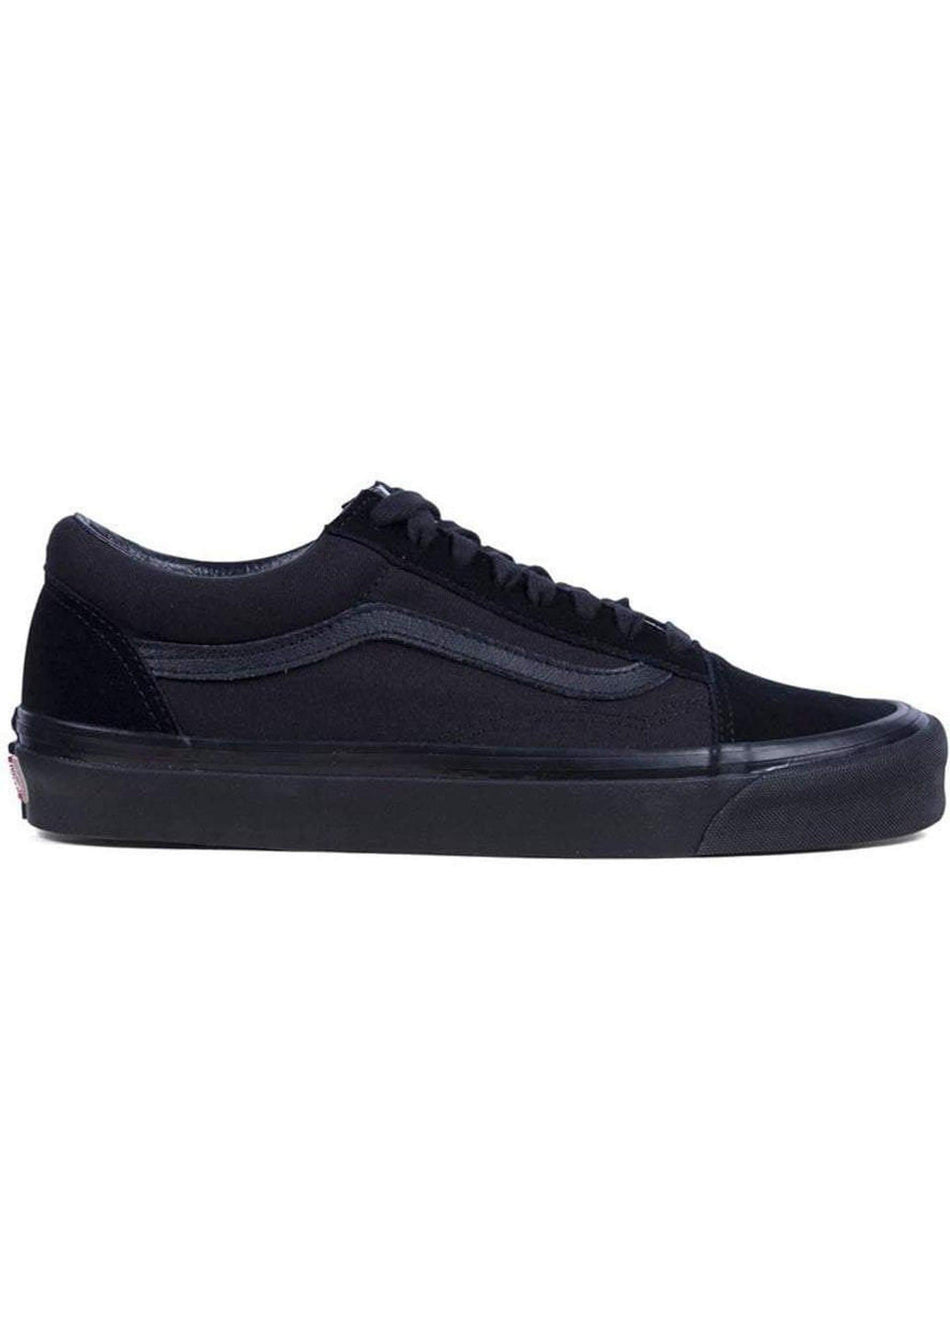 anaheim factory old skool 36 dx - og black/black VANS - Vittorio Citro Boutique